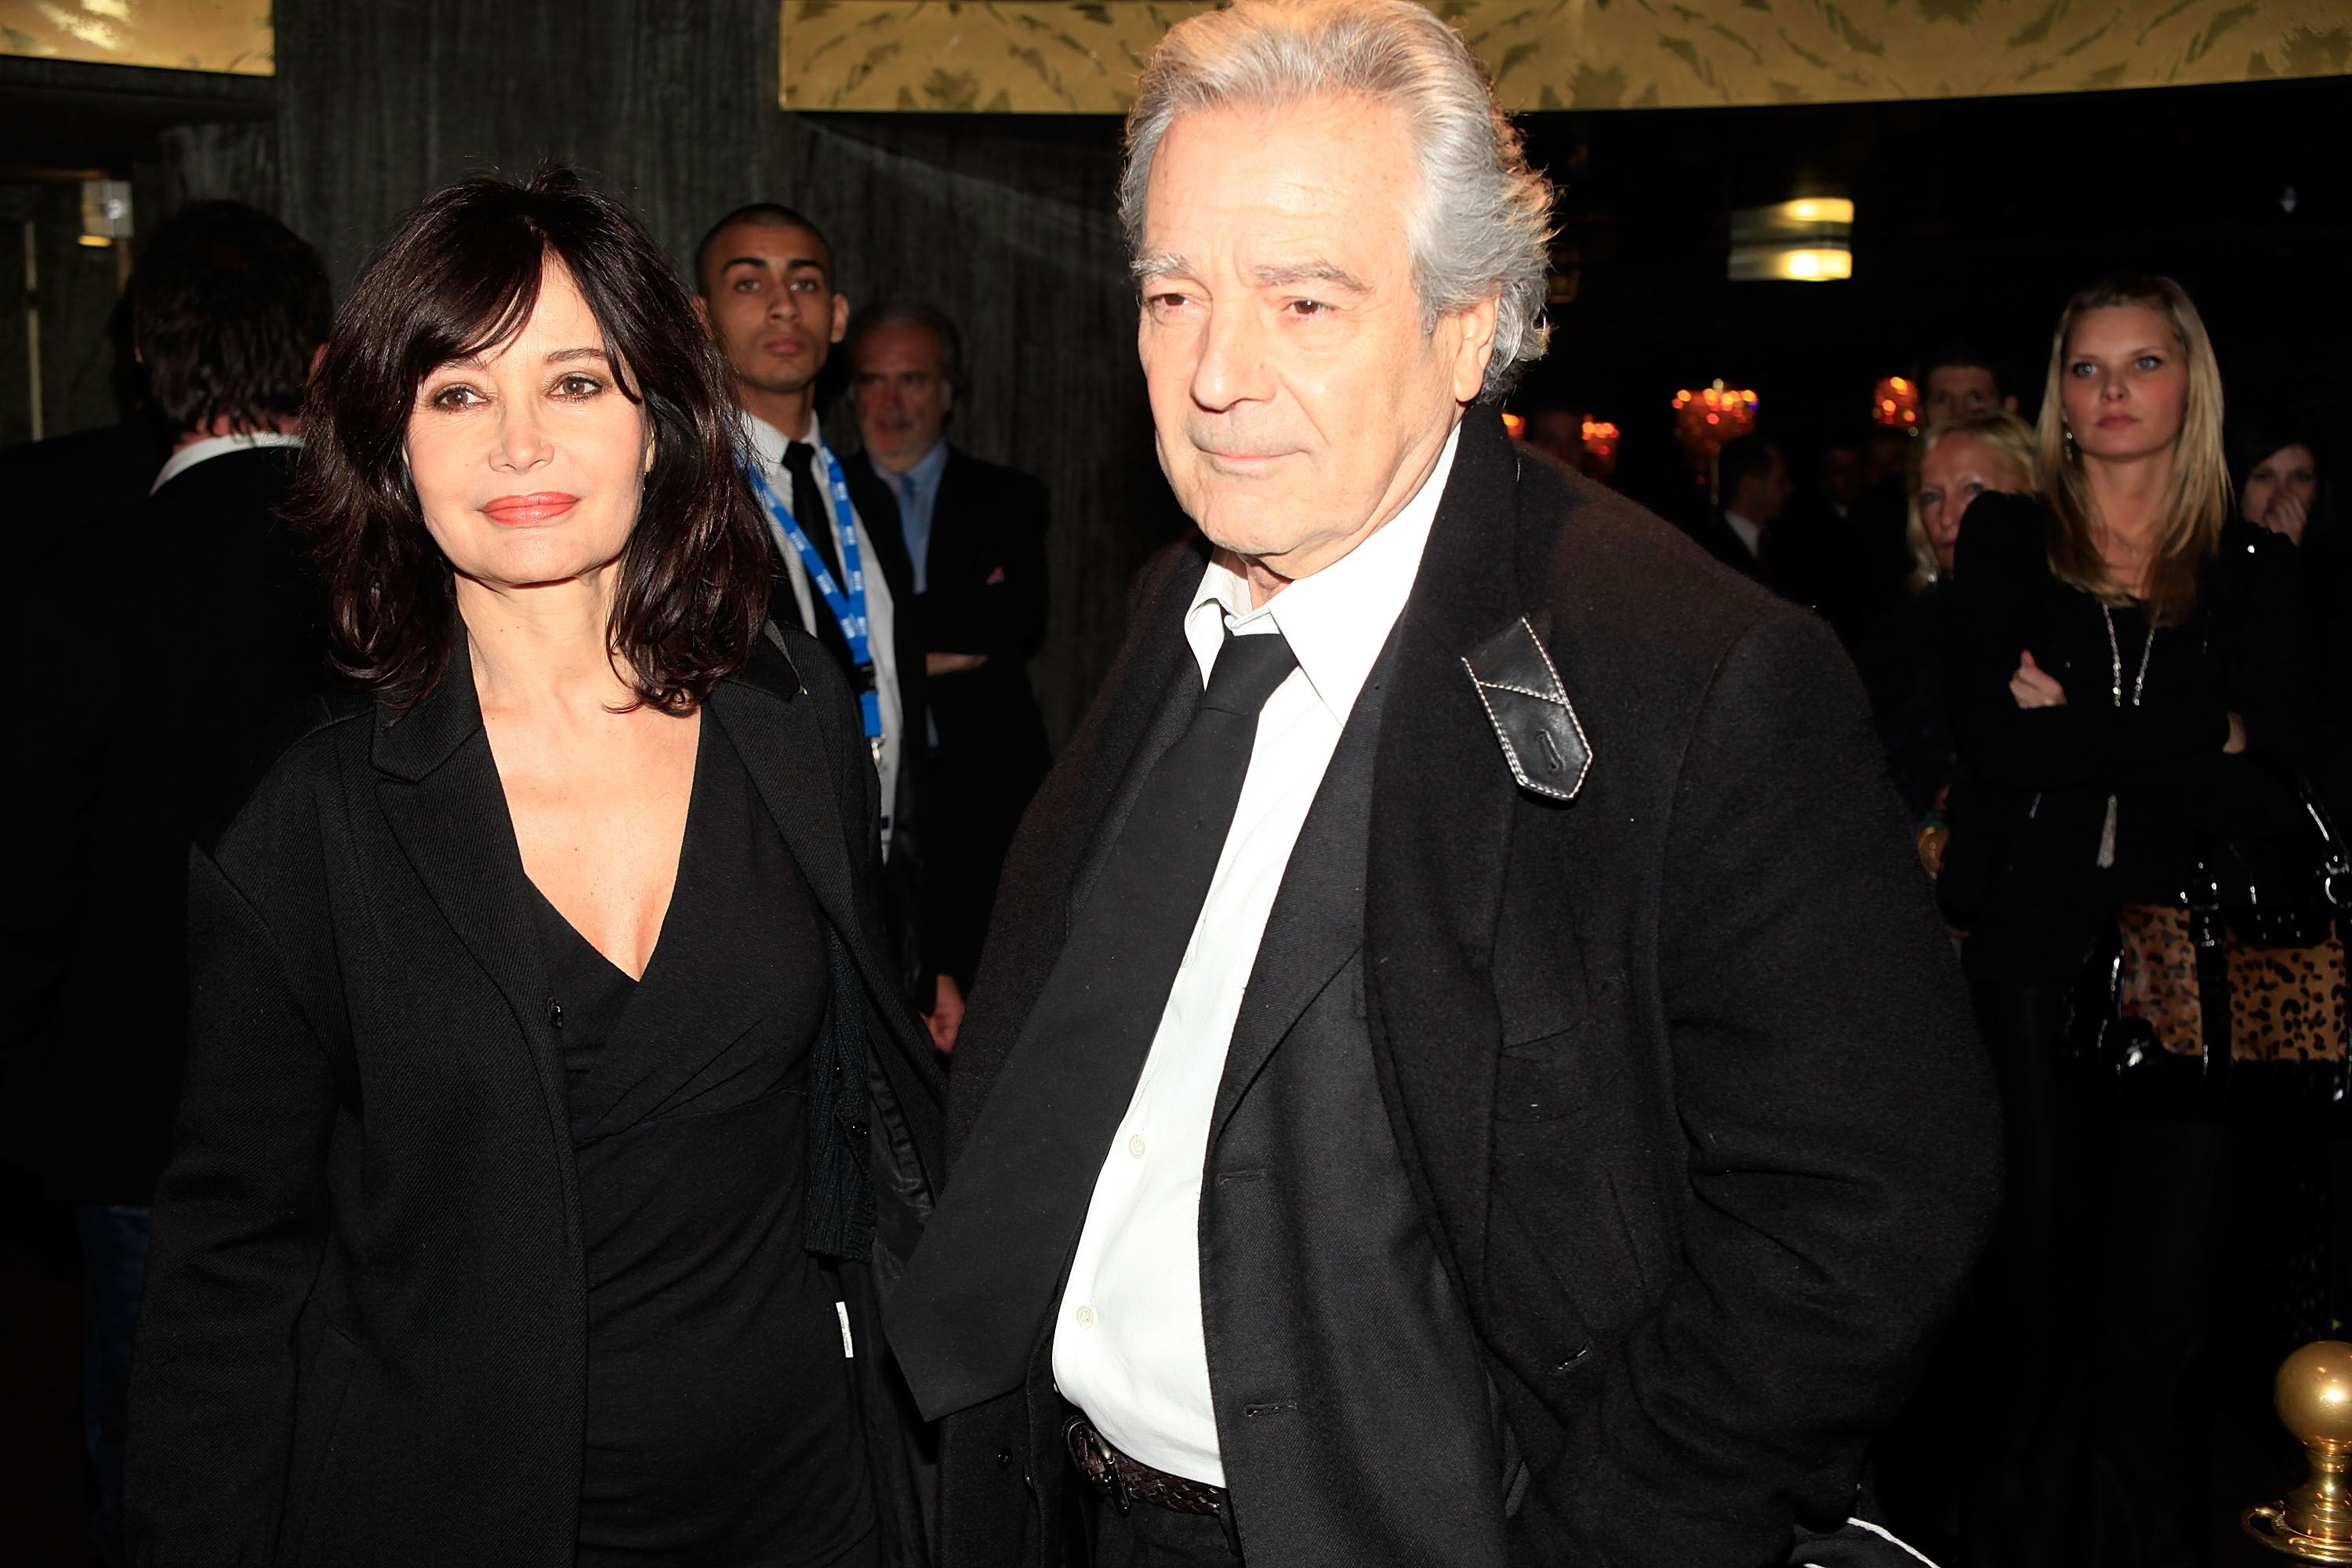 Pierre Arditi et son épouse Evelyne Bouix assistent aux Globes de Cristal 2011 au Lido le 7 février 2011 à Paris, France. | Photo : Getty Images